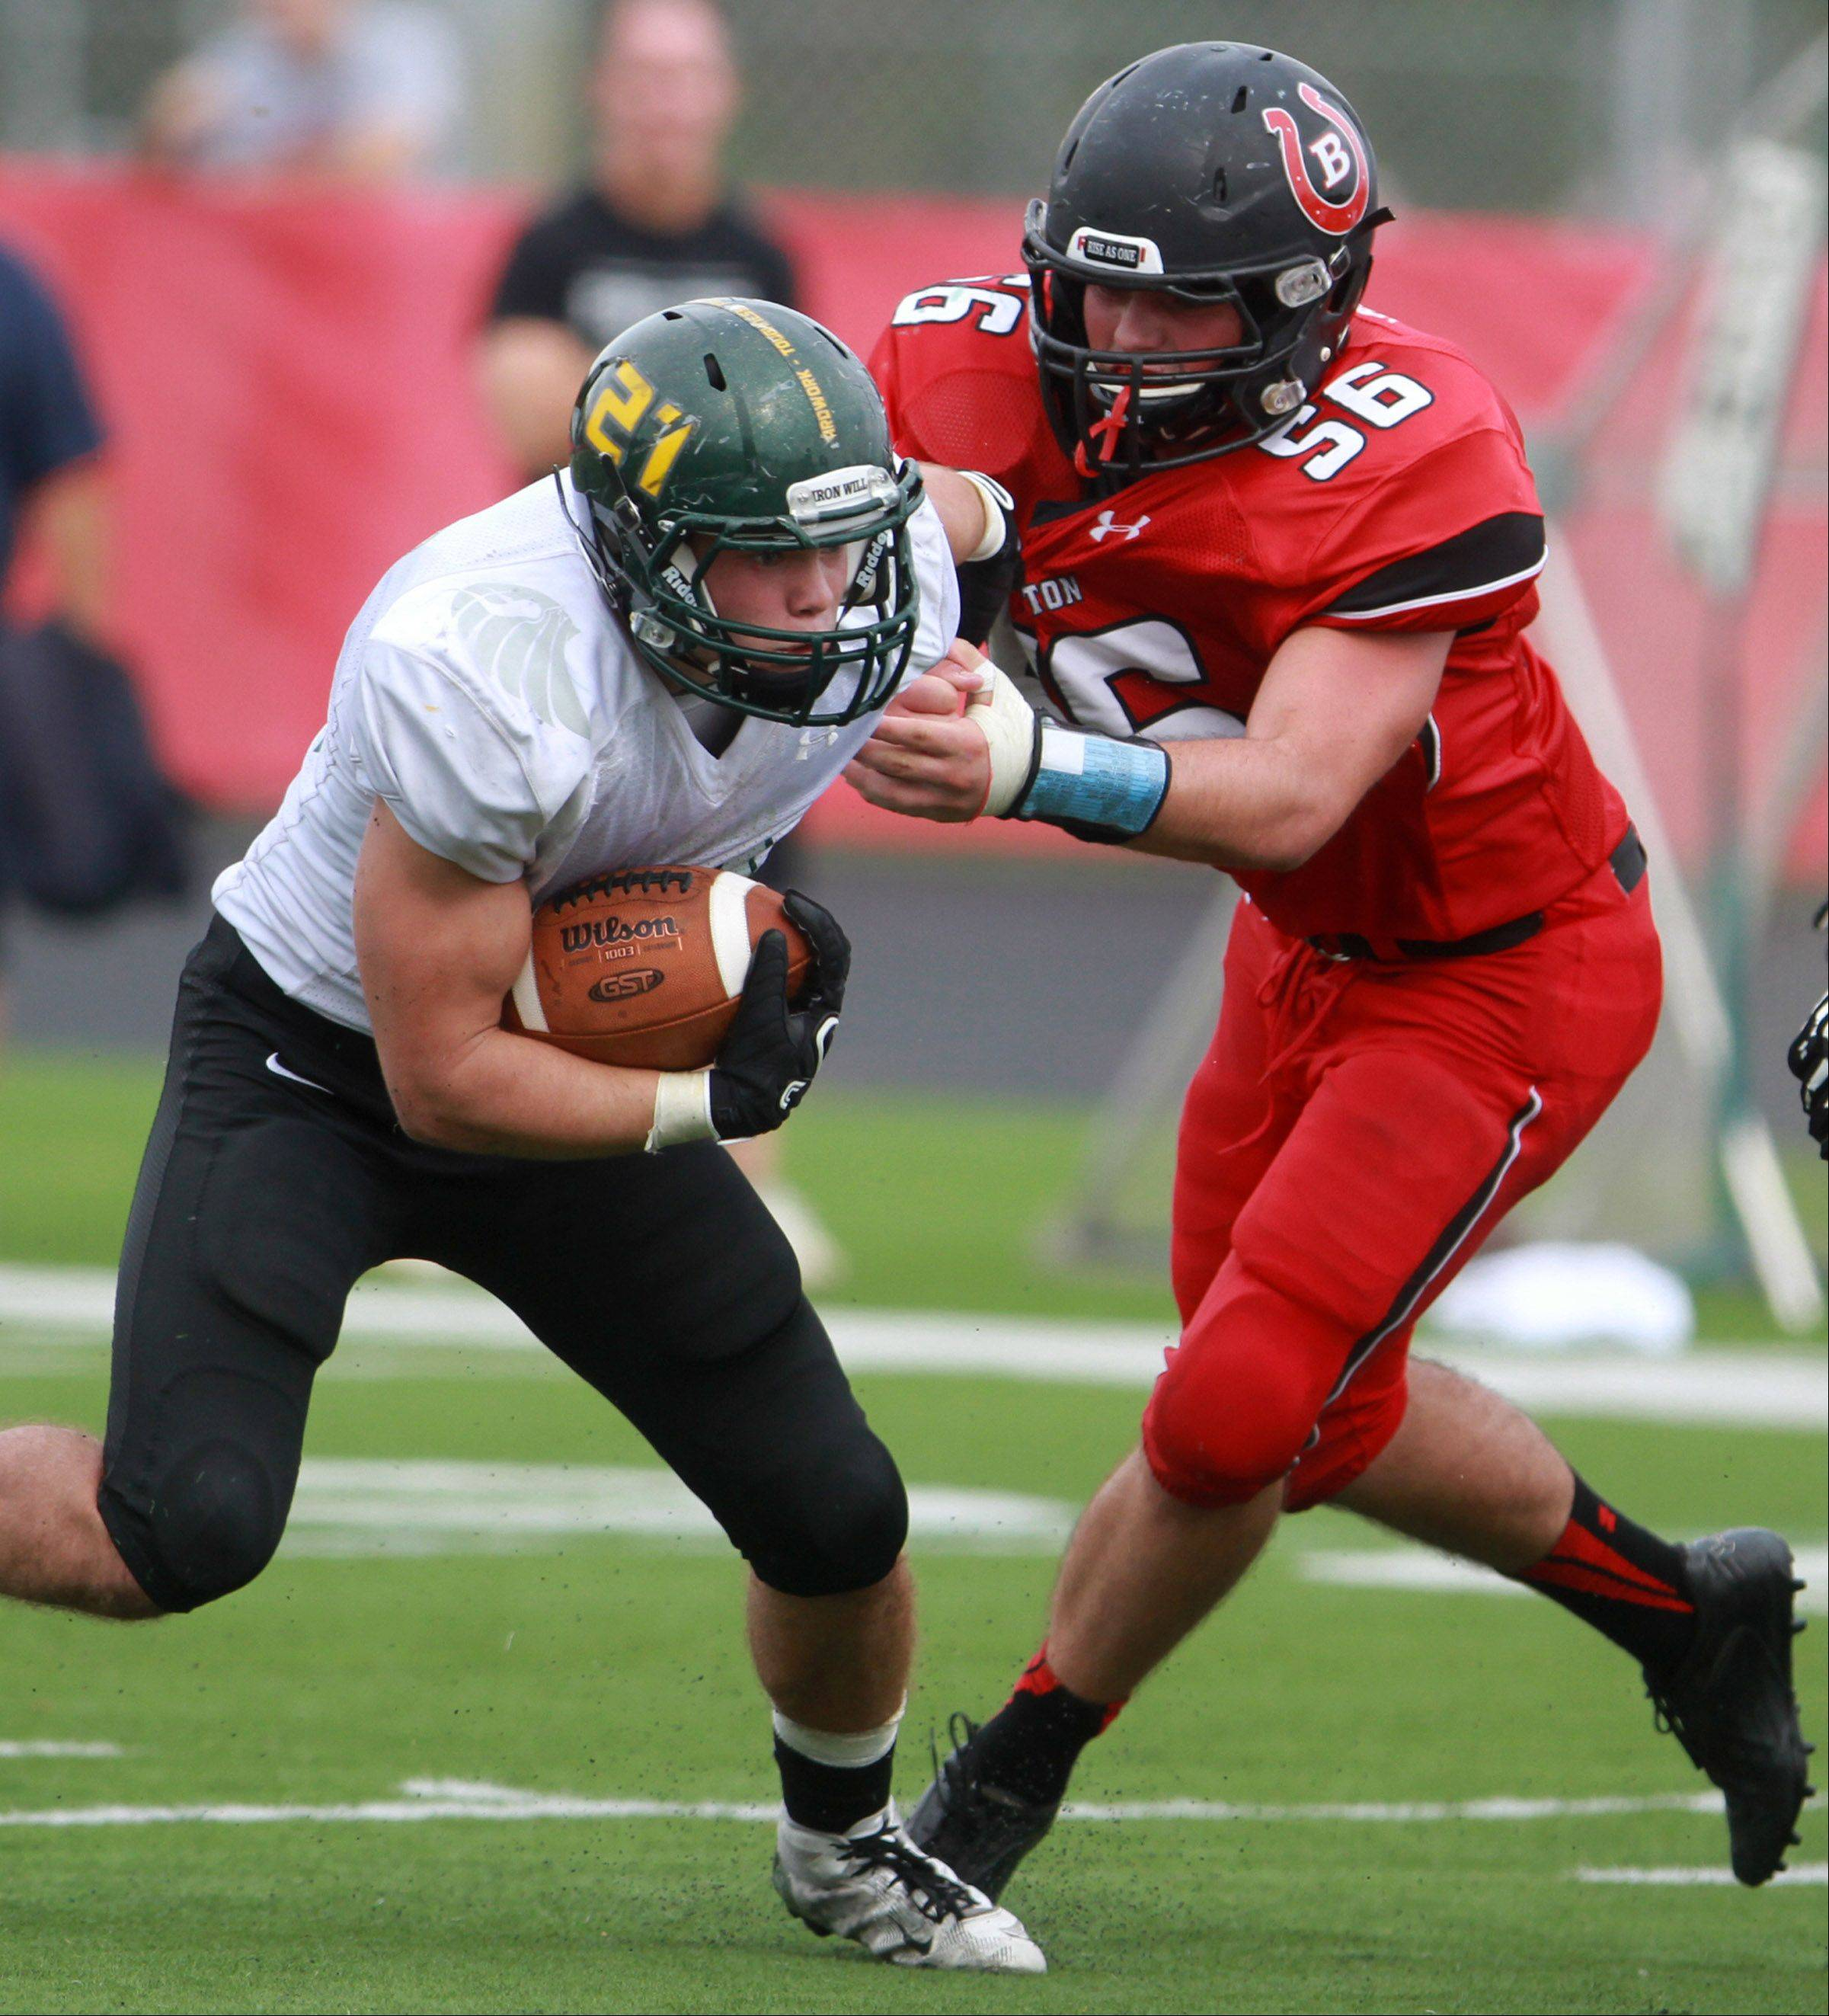 Barrington defender Ryan Blair pulls down Fremd running-back Jeff McGlade at Barrington on Saturday.